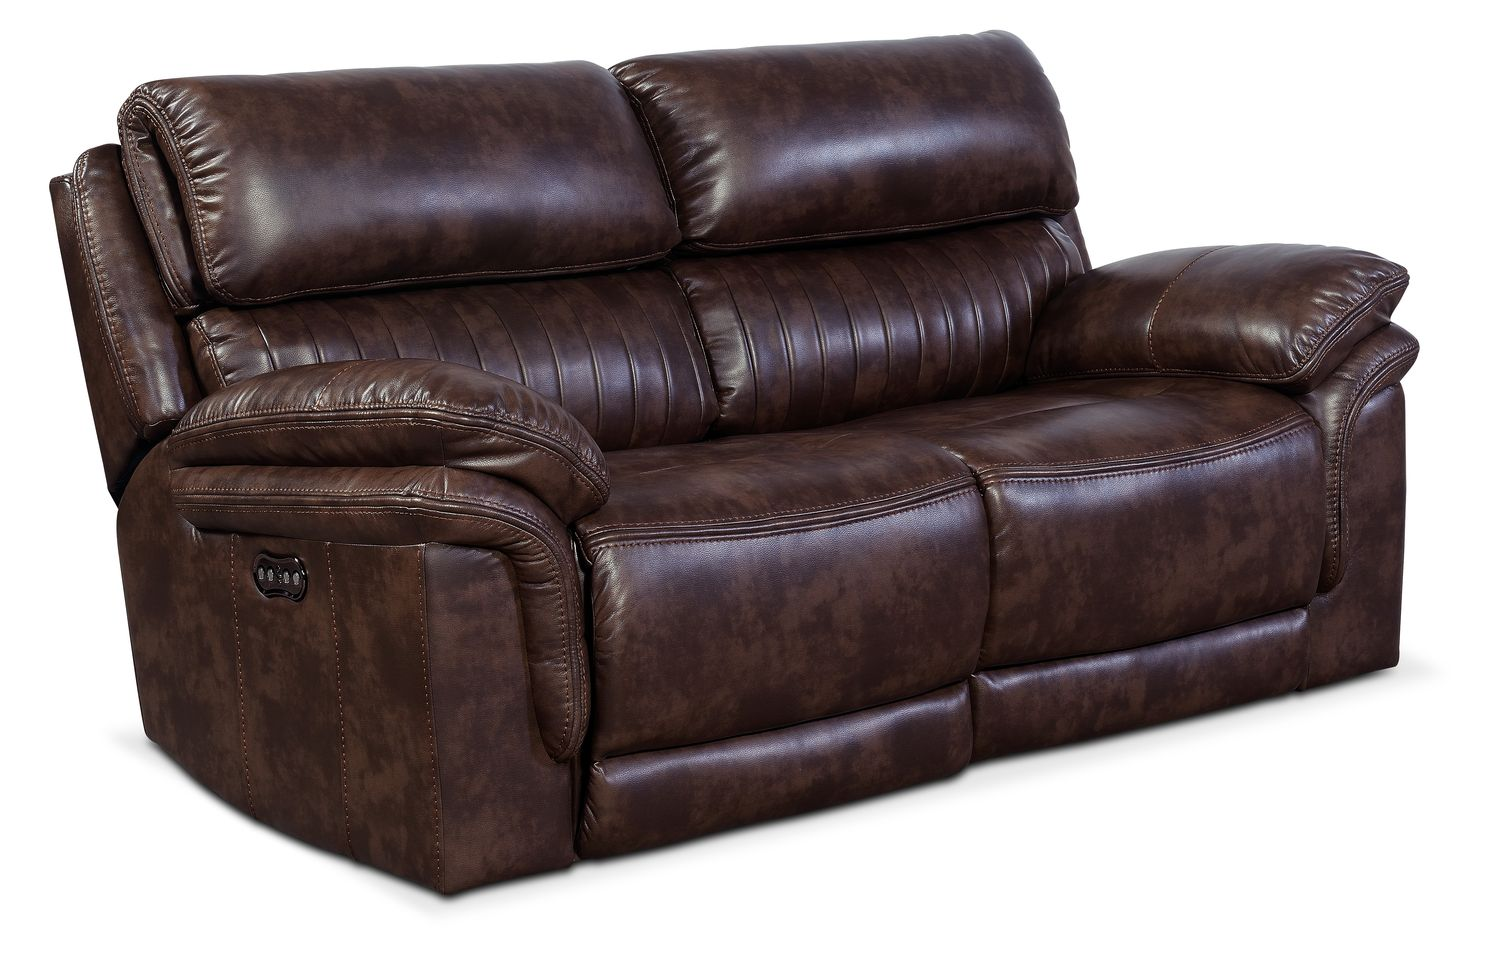 Monterey 2-Piece Power Reclining Loveseat - Chocolate  sc 1 st  Value City Furniture : red leather sectional value city - Sectionals, Sofas & Couches